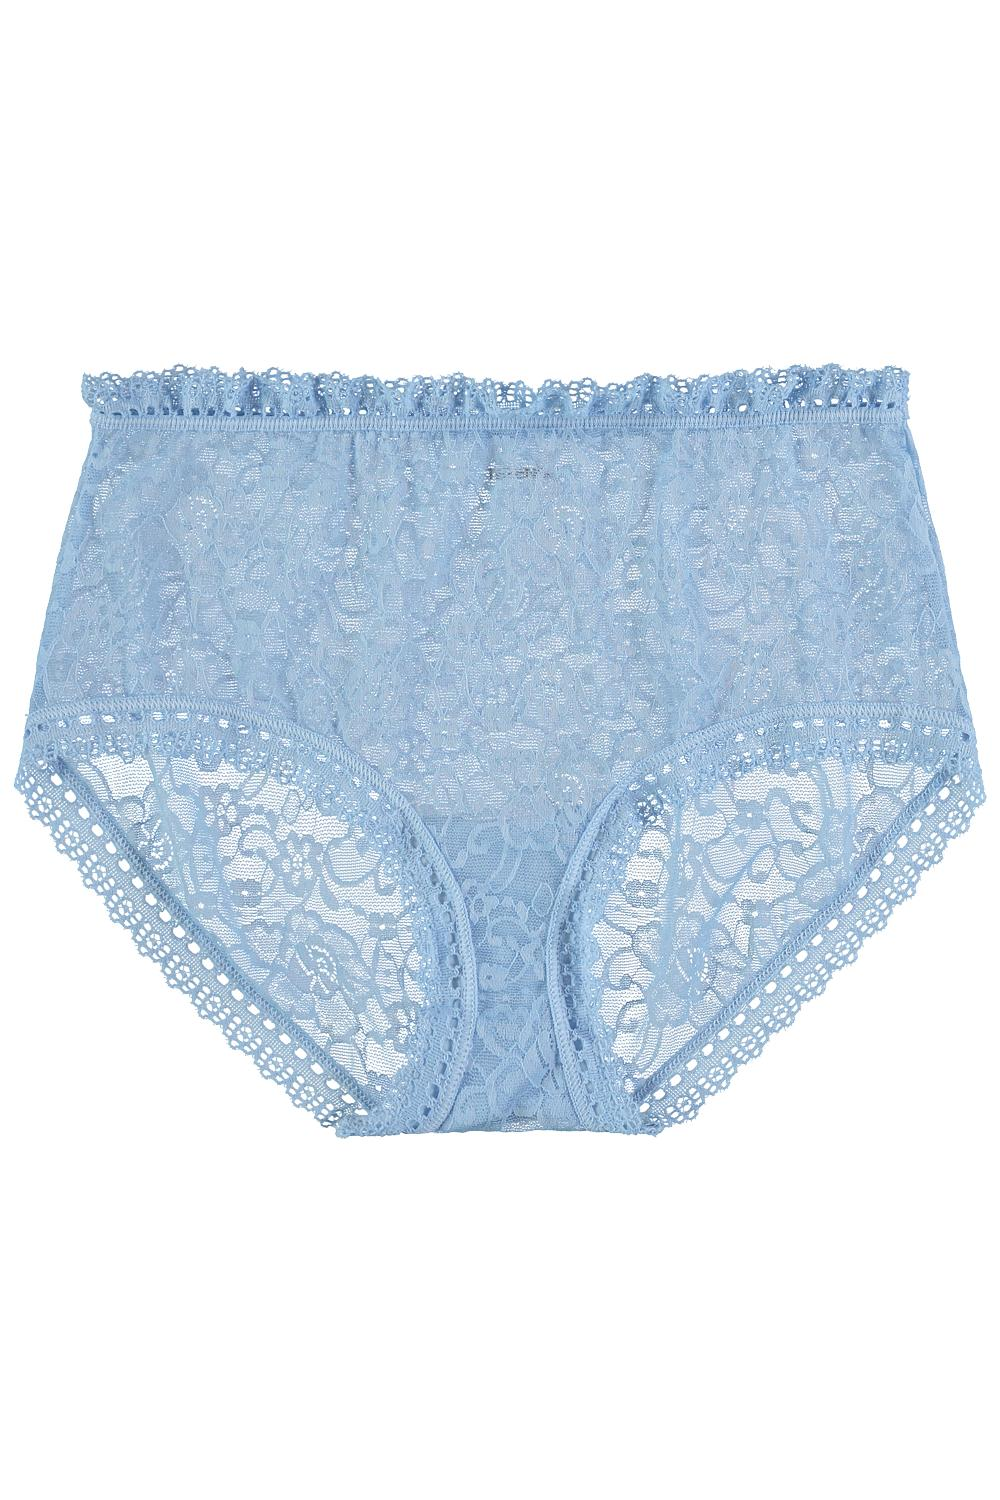 High-Waisted Panties in Lace